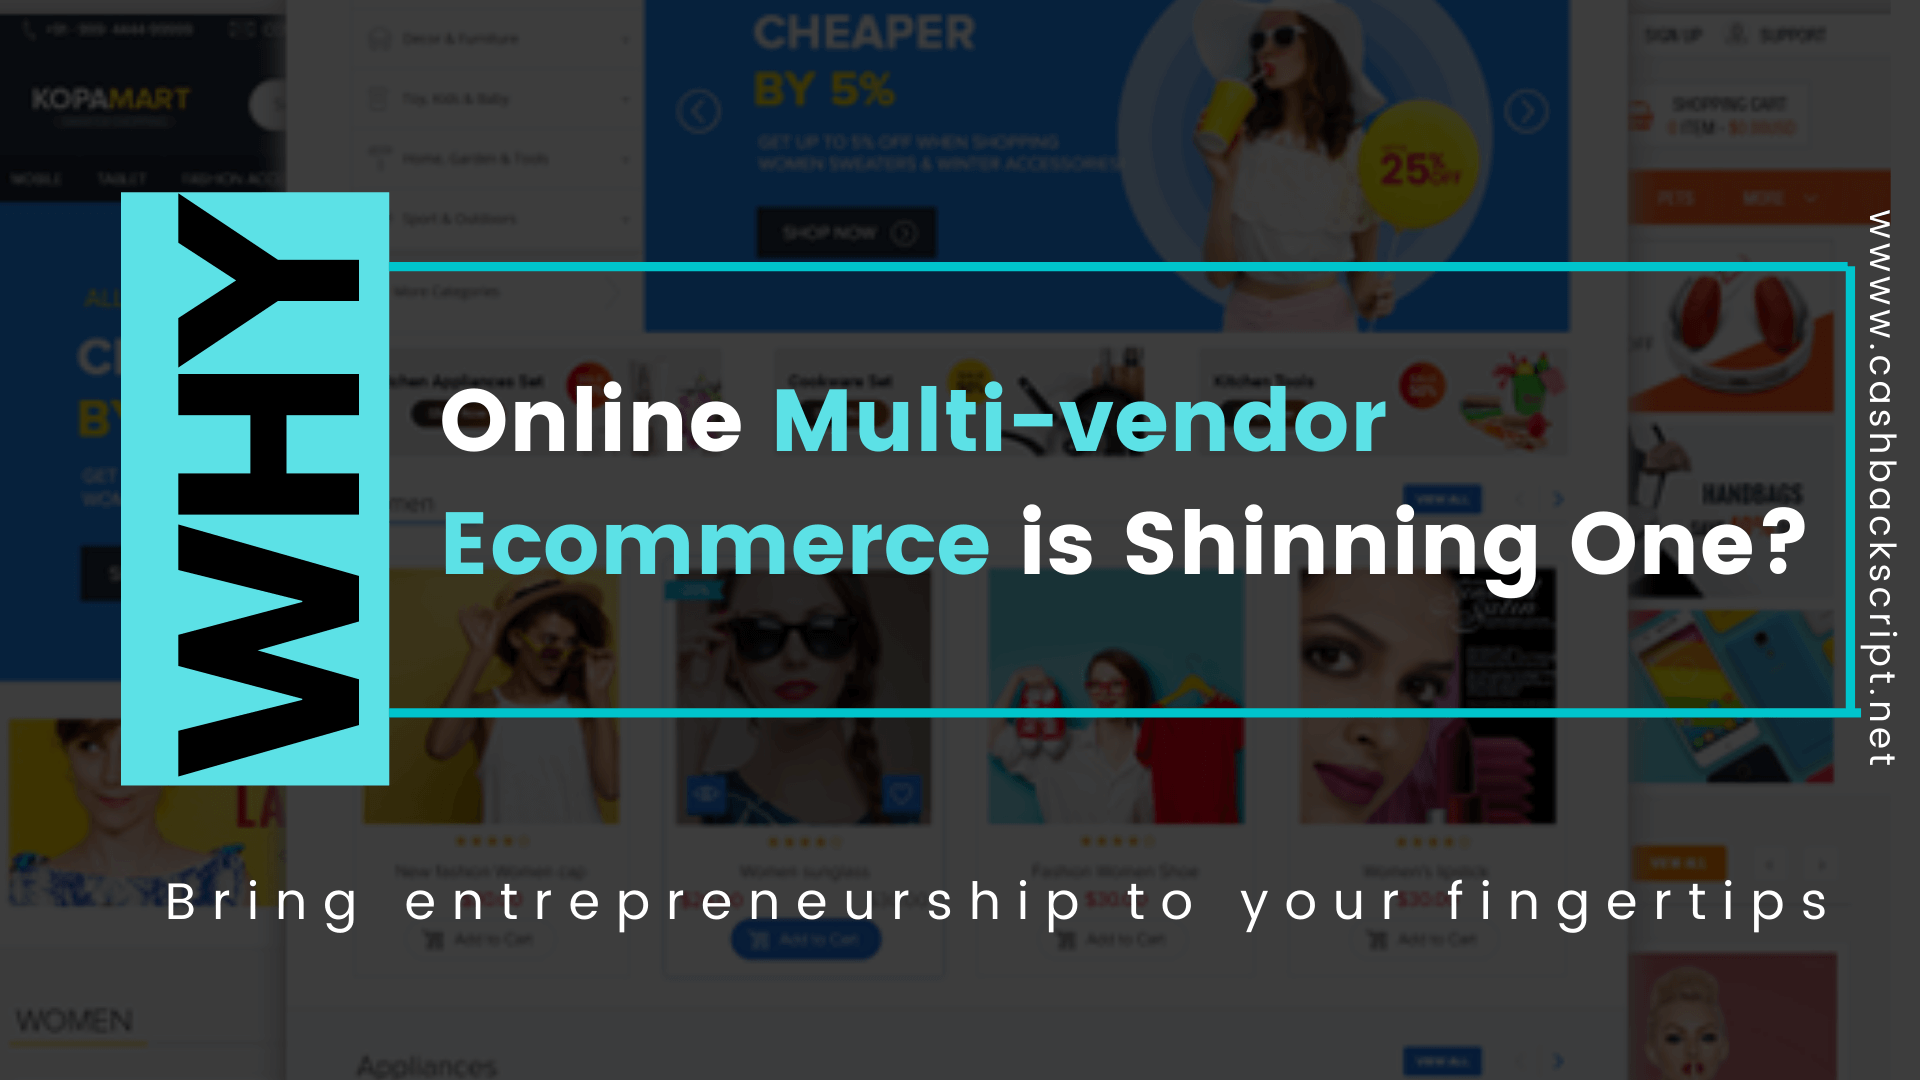 Why Online Multi-vendor Ecommerce is Shinning One?